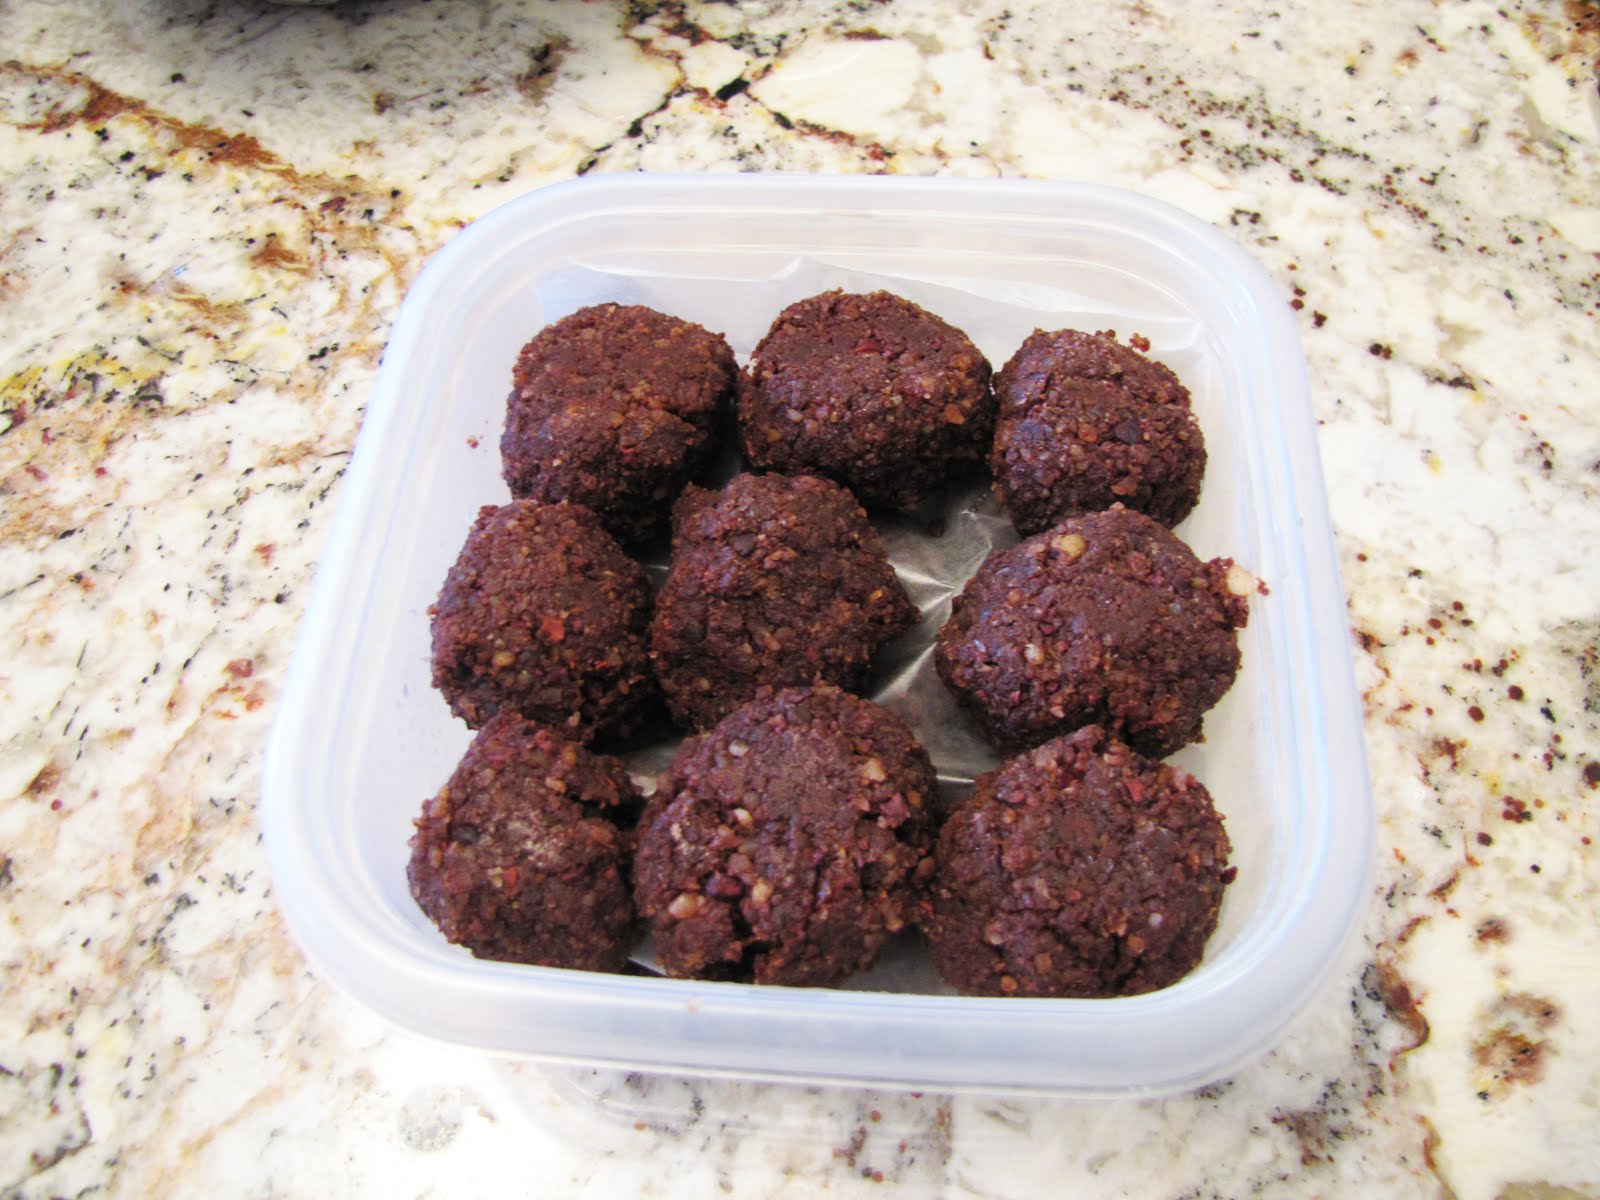 Orange Cacao Nut Balls